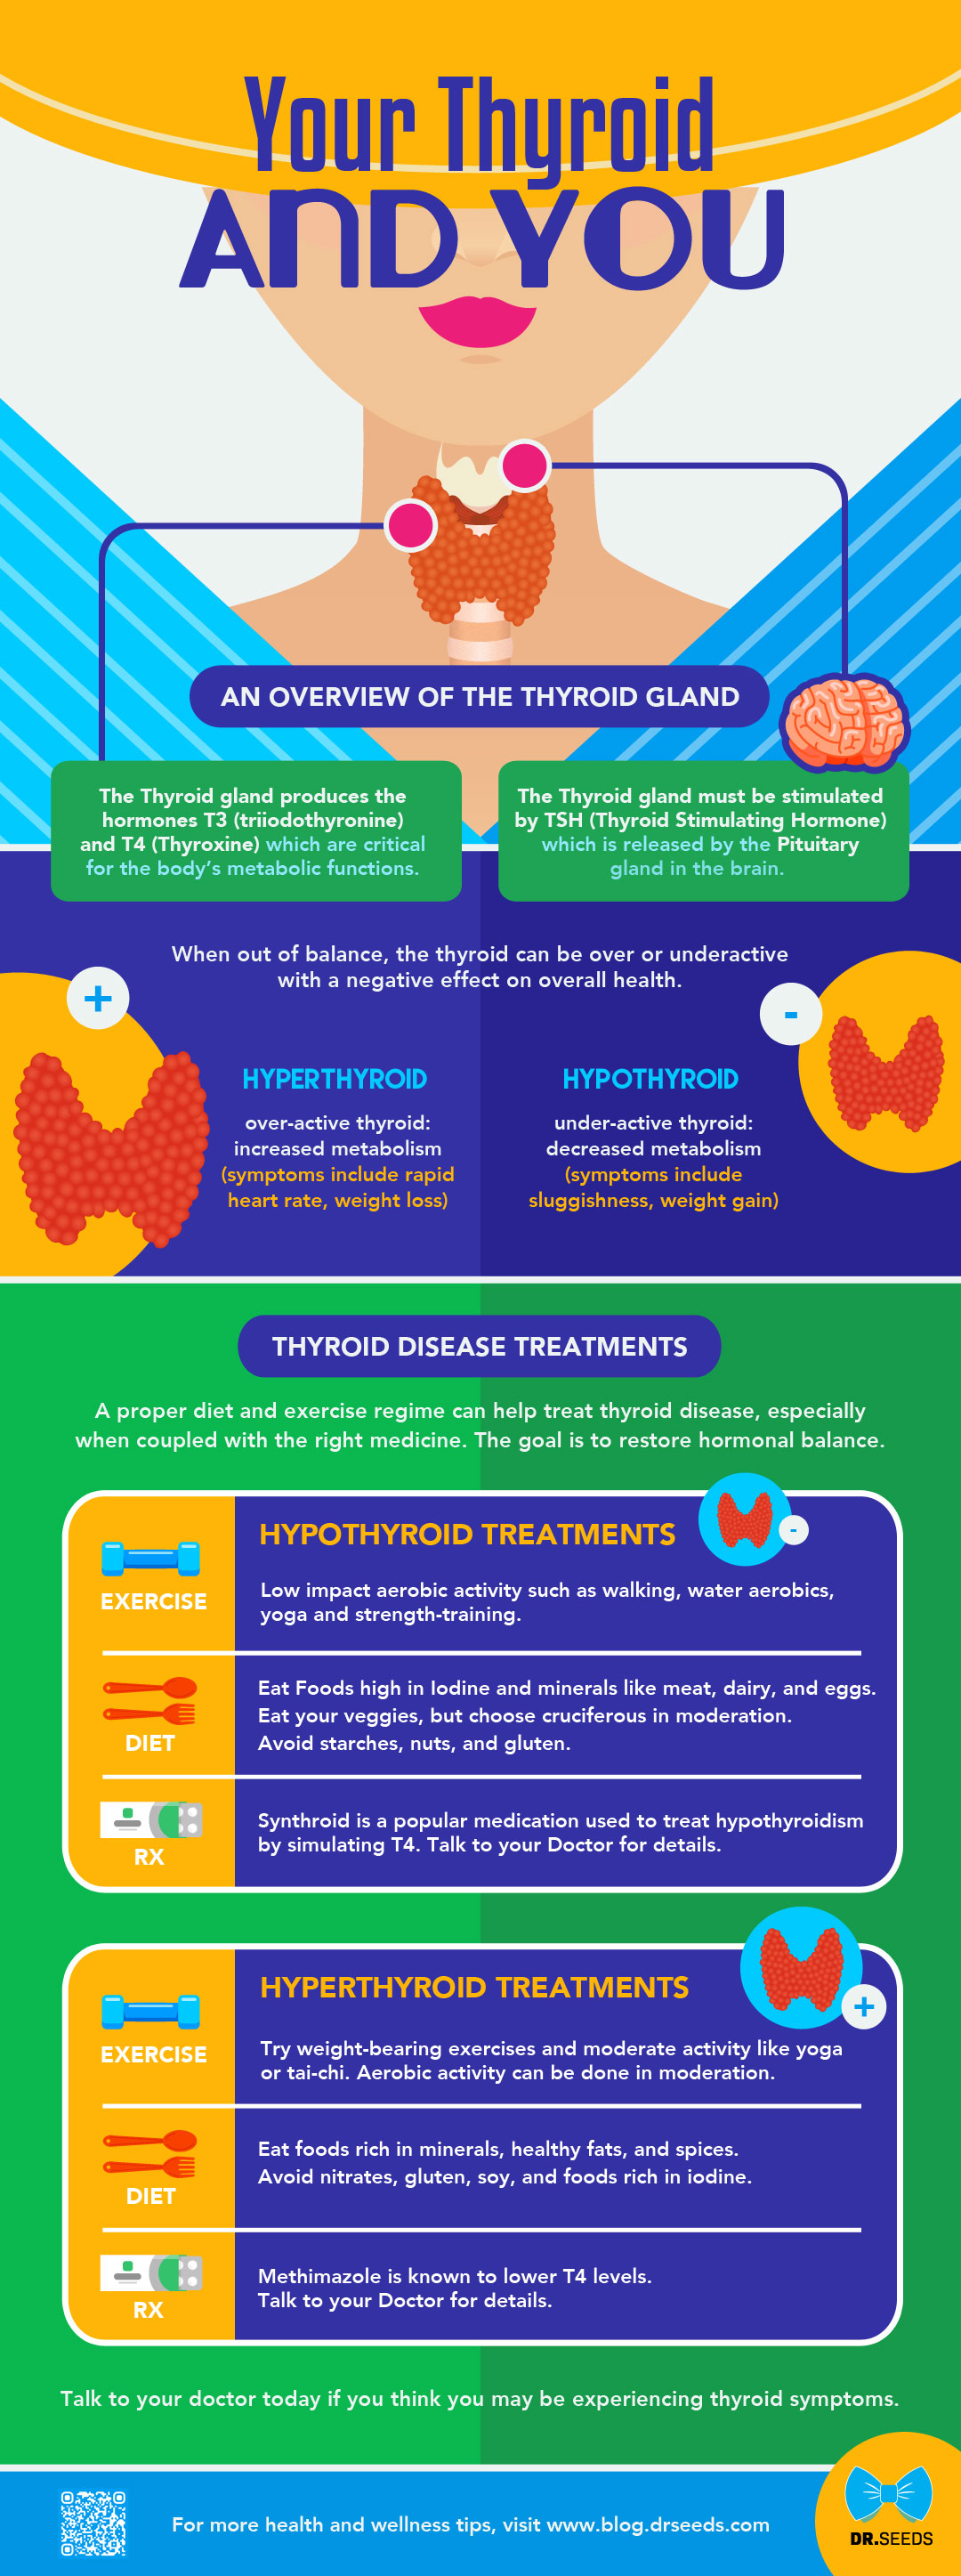 YOUR THYROID AND YOU: AN OVERVIEW OF THE THYROID GLAND [INFOGRAPHIC] What does the thyroid gland do? The Thyroid gland produces the hormones T3 (triiodothyronine) and T4 (Thyroxine) which are critical for the body's metabolic functions. The Thyroid gland must be stimulated by TSH (Thyroid Stimulating Hormone) which is released by the Pituitary gland in the brain. When out of balance, the thyroid can be over or underactive with a negative effect on overall health. HYPERTHYROID - over-active thyroid: increased metabolism (symptoms include rapid heart rate, weight loss). HYPOTHYROID - under-active thyroid: decreased metabolism (symptoms include sluggishness, weight gain). COMMON THYROID DISEASE TREATMENTS: A proper diet and exercise regime can help treat thyroid disease, especially when coupled with the right medicine. The goal is to restore hormonal balance. Read our infographic for details. - https://blog.drseeds.com/synthroid-levothyroxine-loss-appetite-news/